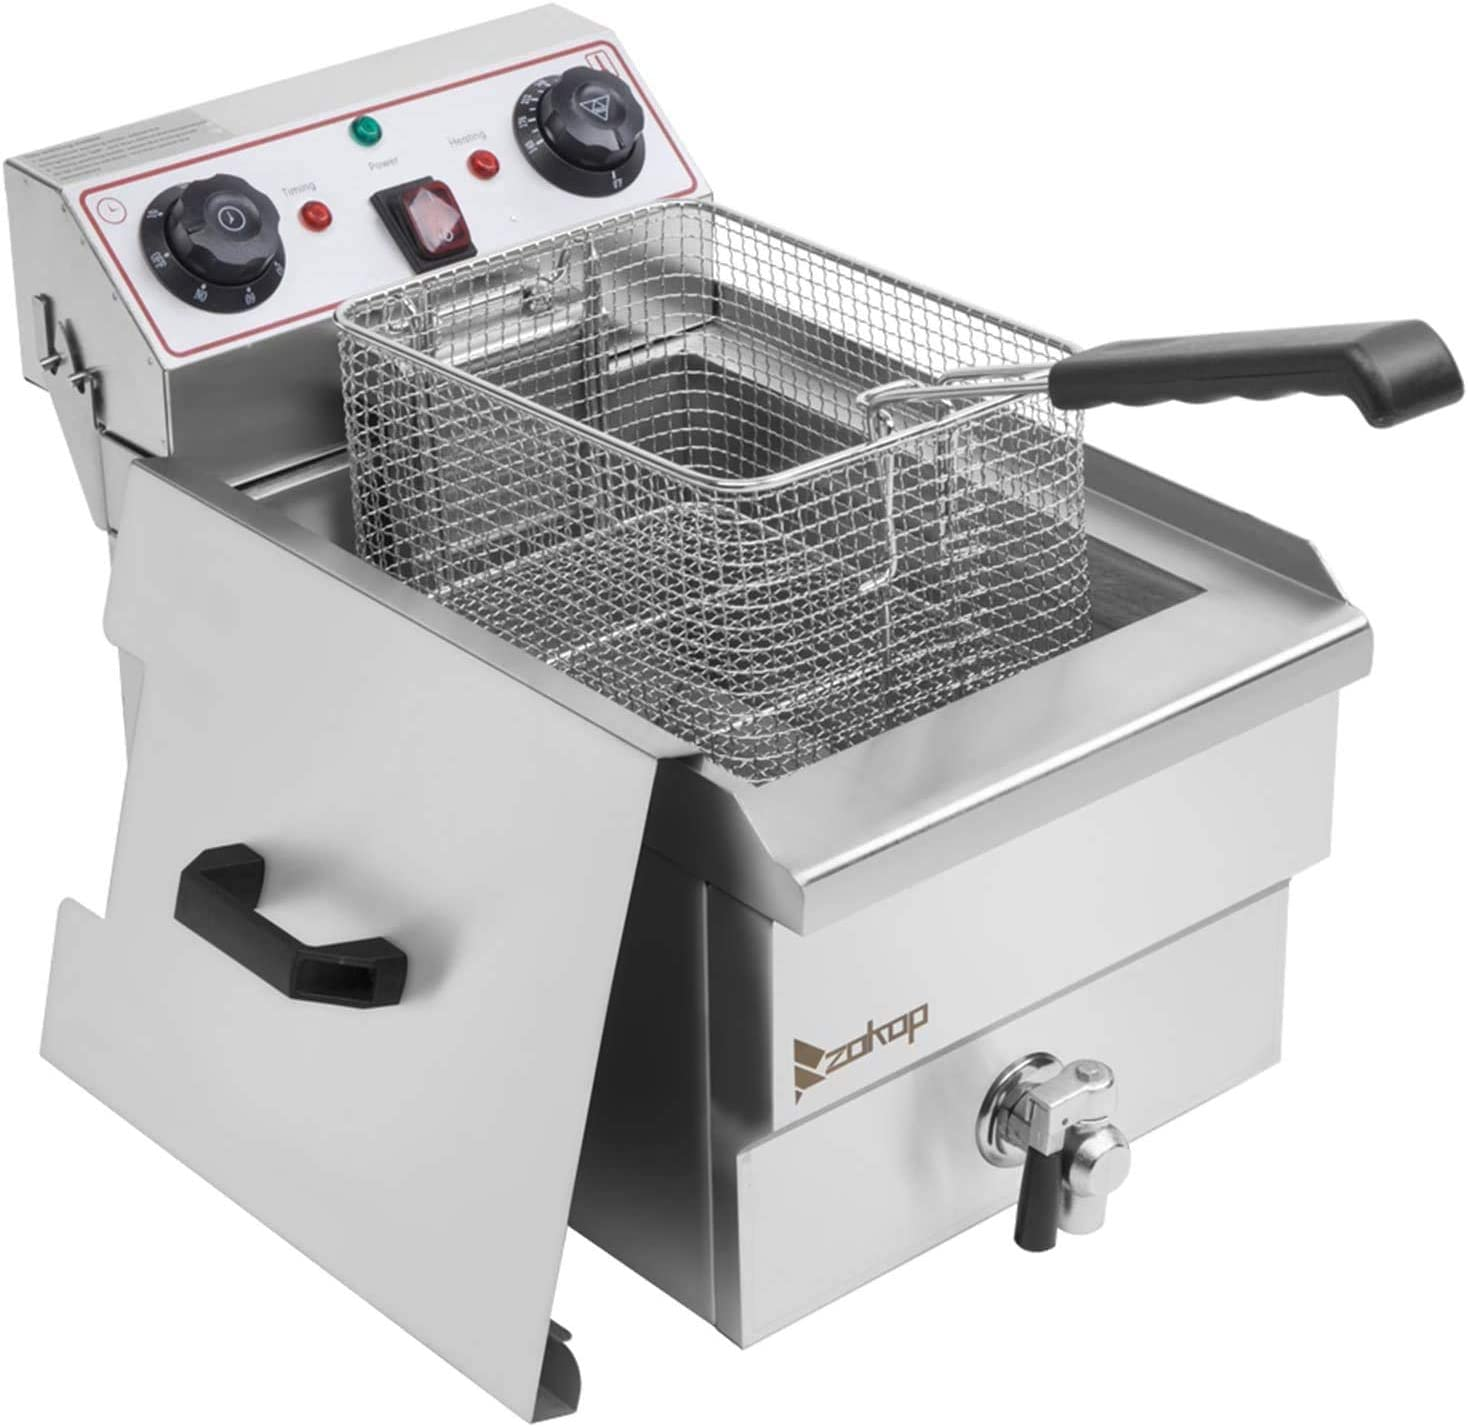 12.5 QT Butterball Electric Turkey Fryer,Stainless Steel Single Tank Deep Fat Fryer with Removable Baskets and Thermostats,Silver